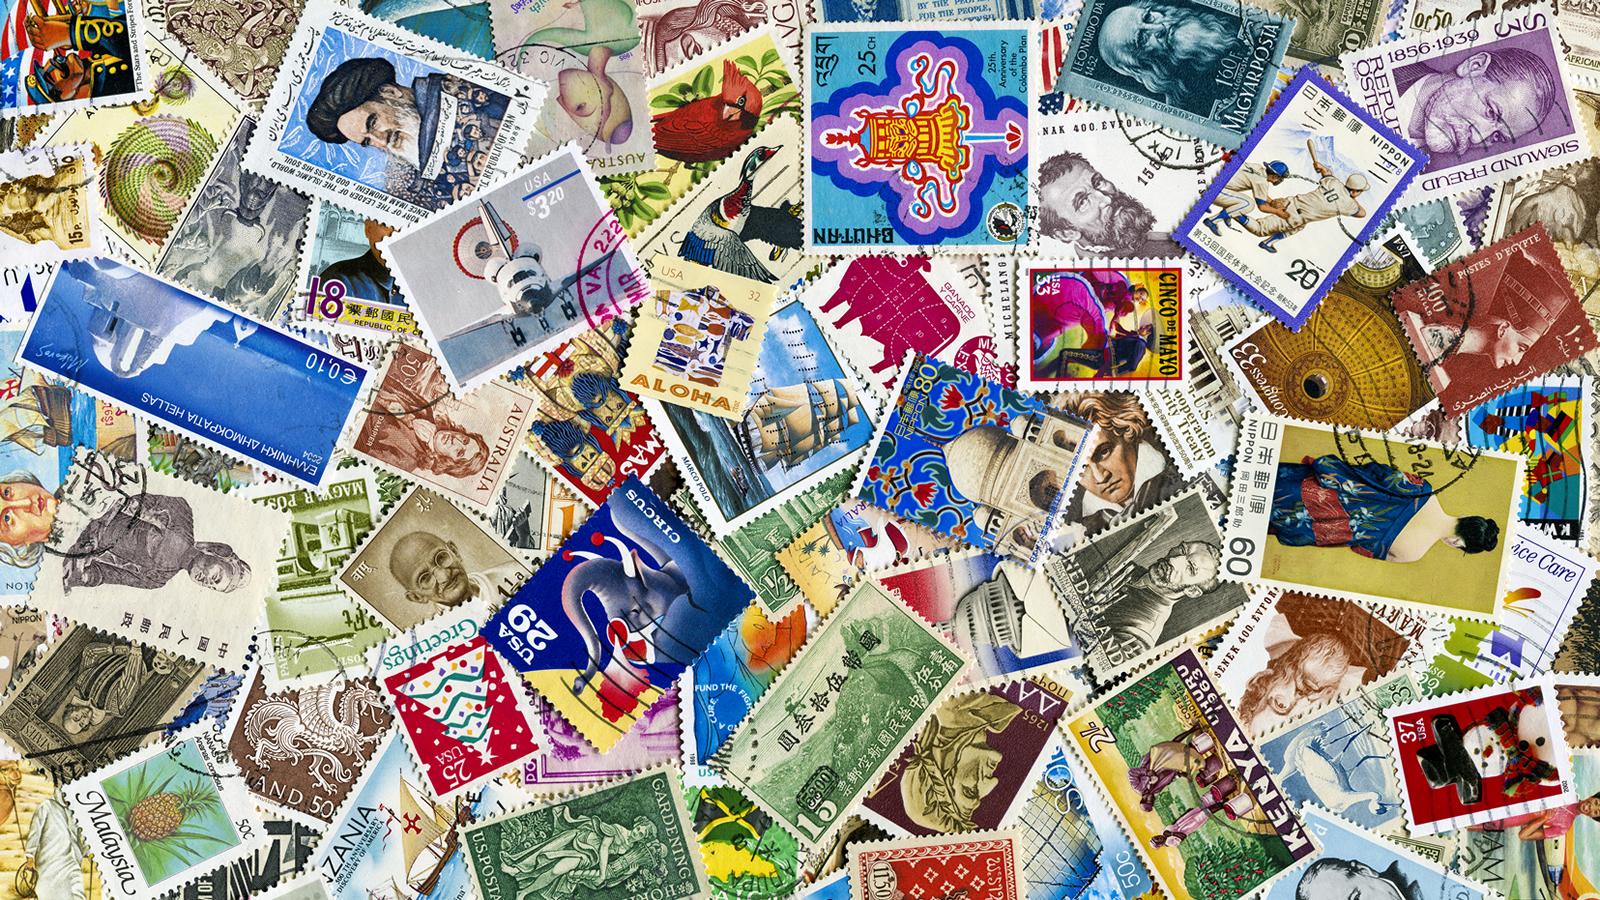 A collage of international postal stamps